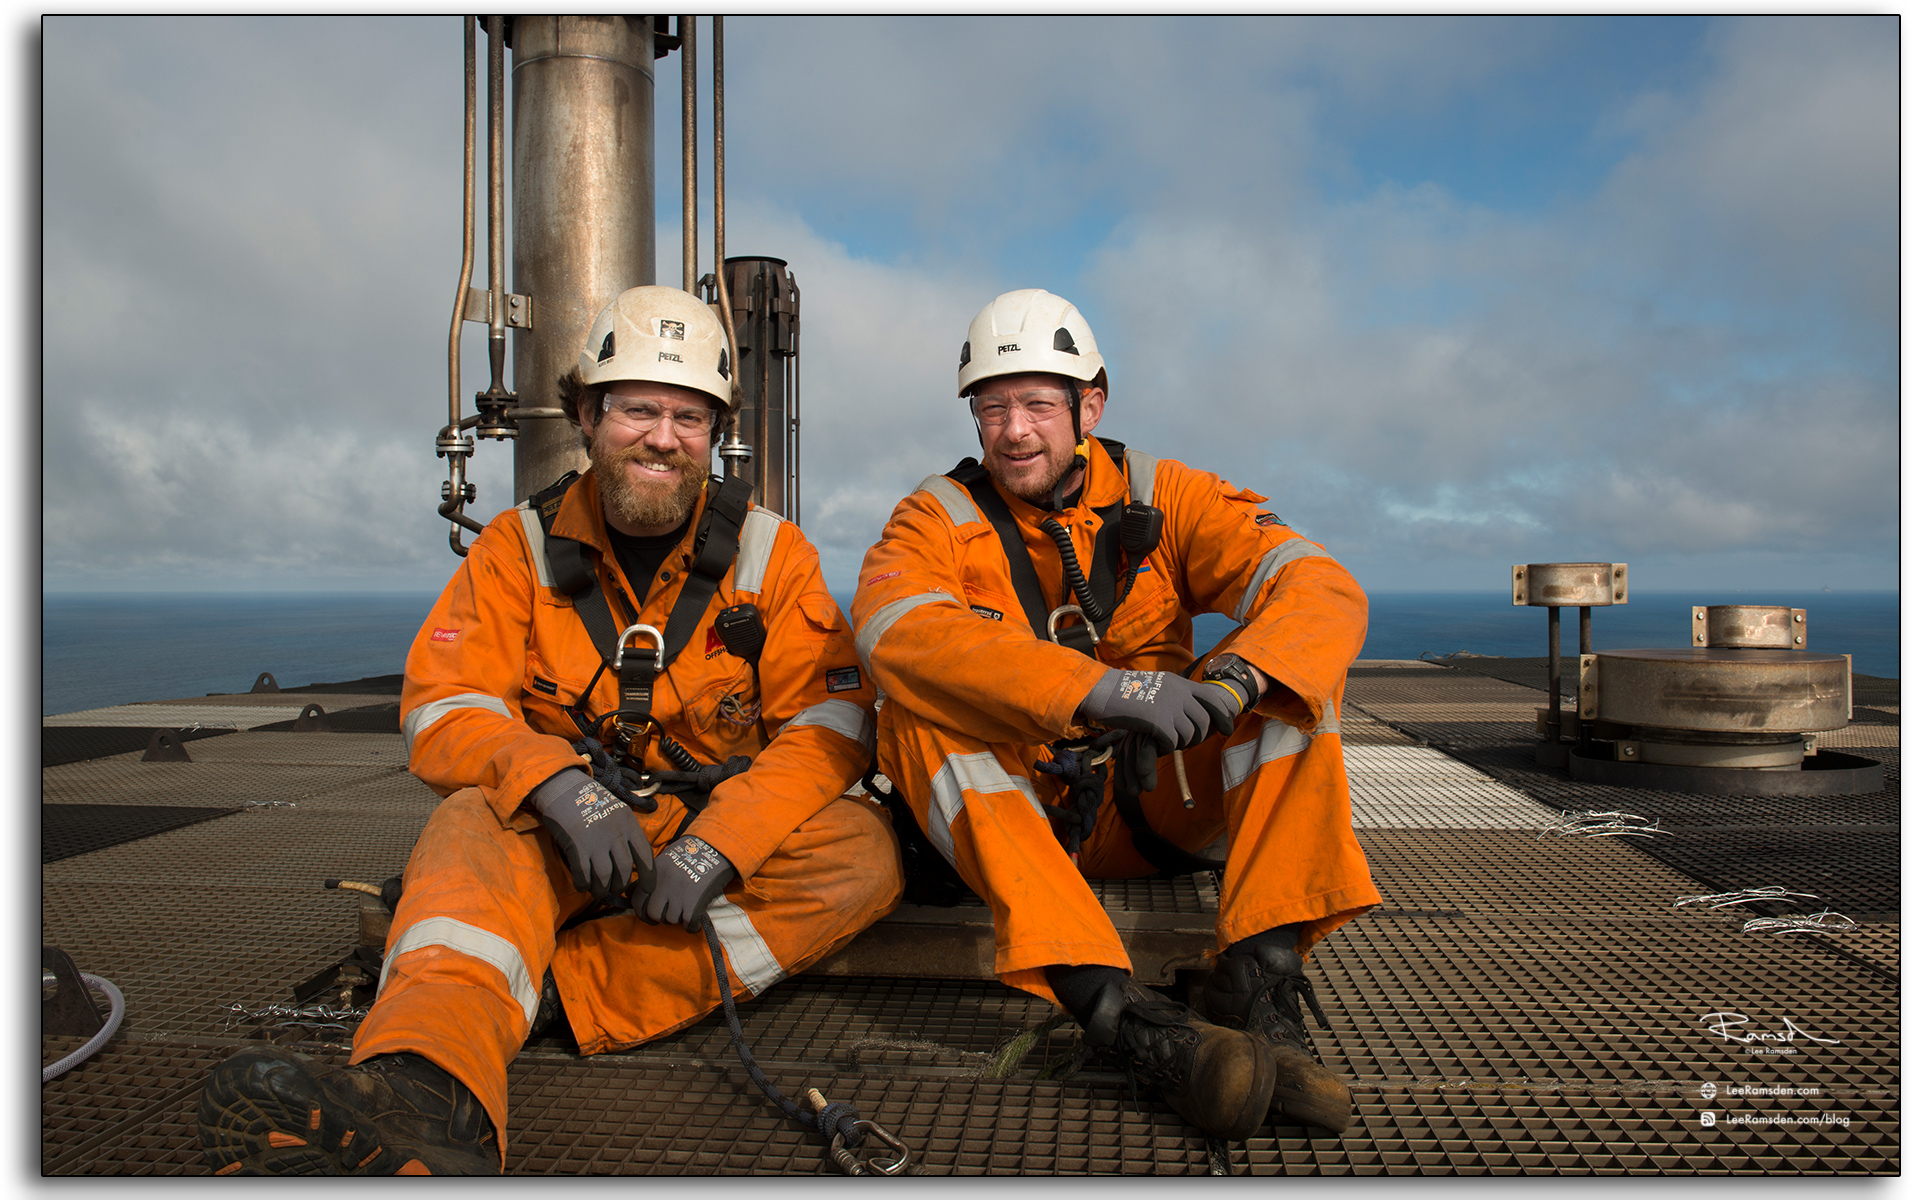 blog, Flare view, rope access, IRATA, industiral, technicians, top of BP Miller, danny king, Petrofac, BP, Saipem, ACN, Steve thorogood, Lee Ramsden, photographer, photography.